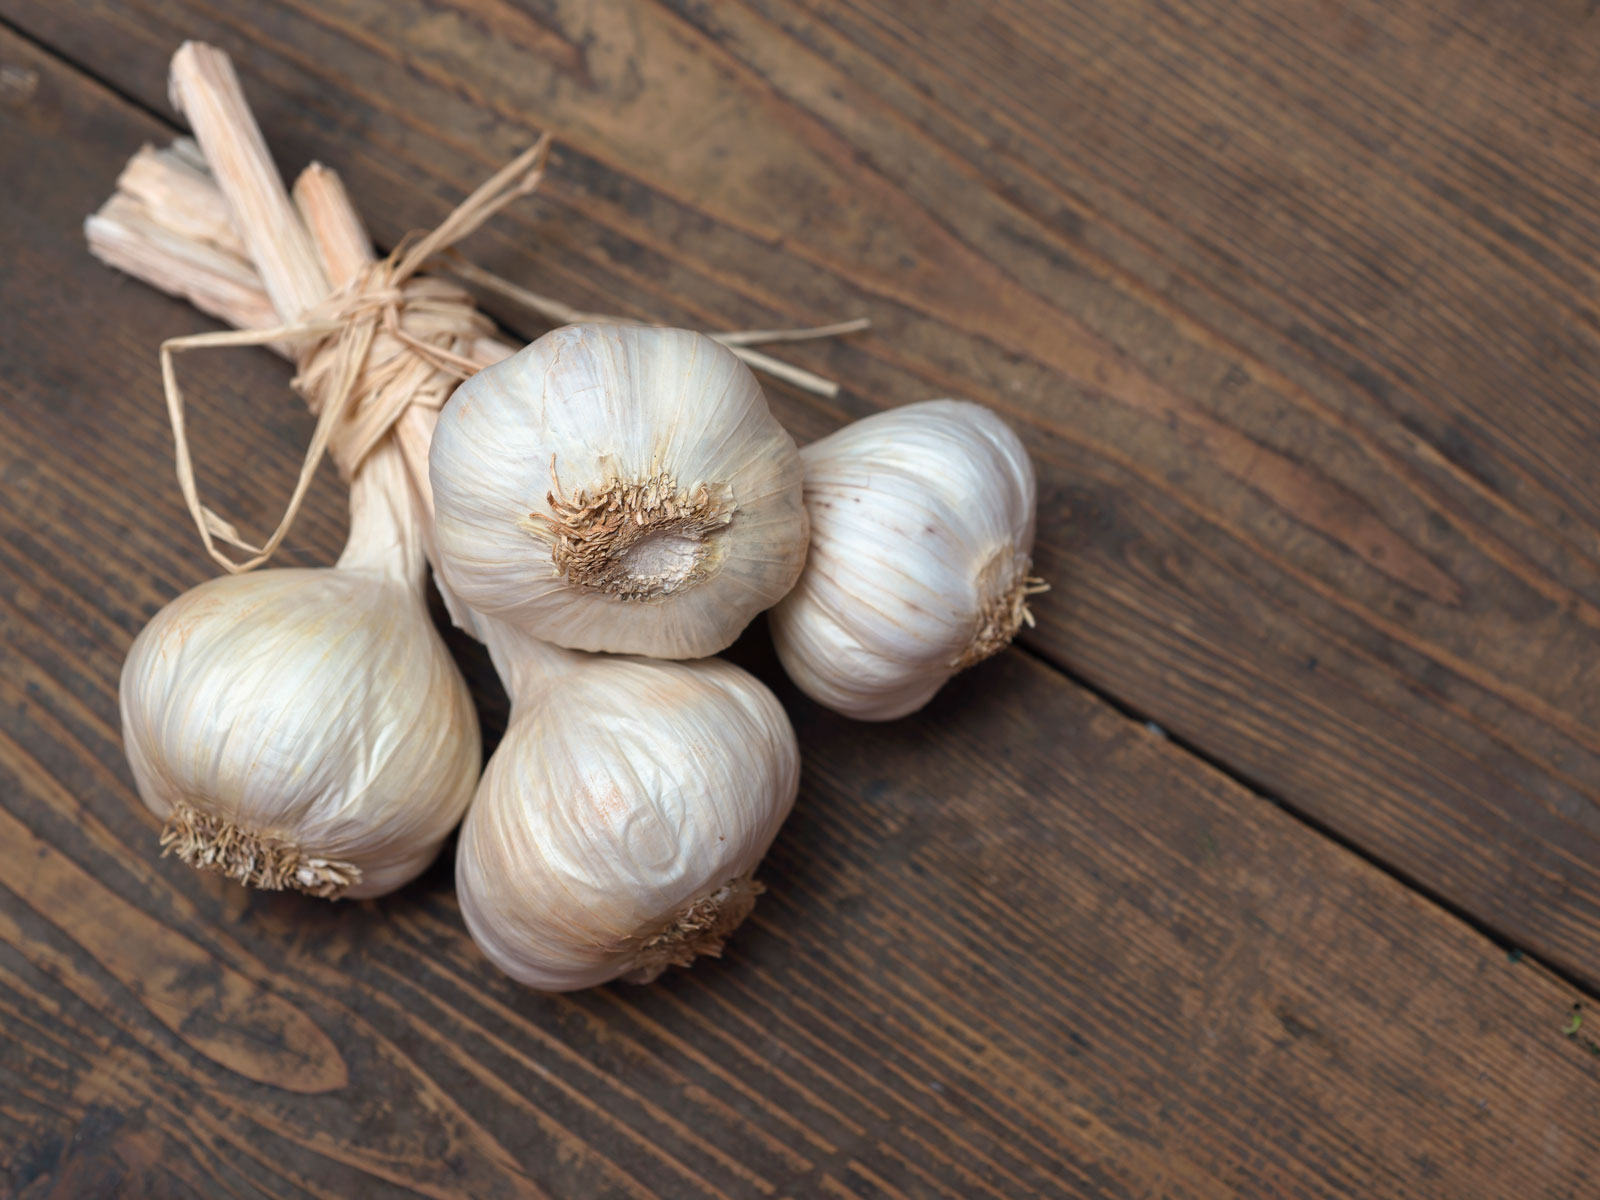 Garlic peeling and cutting tips